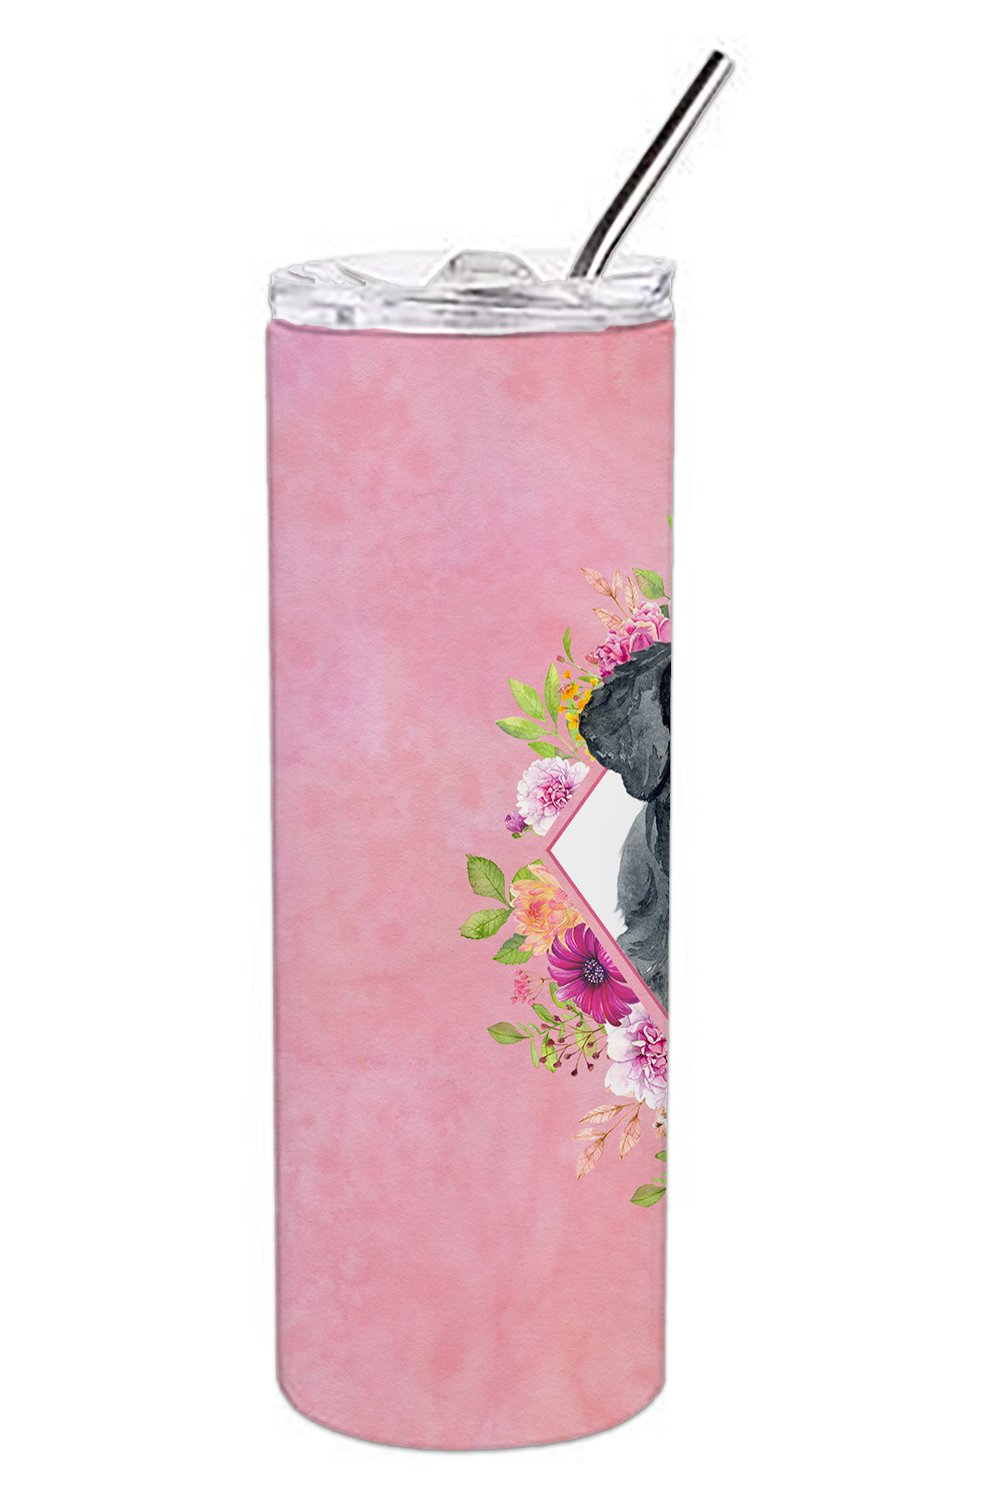 Giant Schnauzer Pink Flowers Double Walled Stainless Steel 20 oz Skinny Tumbler CK4178TBL20 by Caroline's Treasures